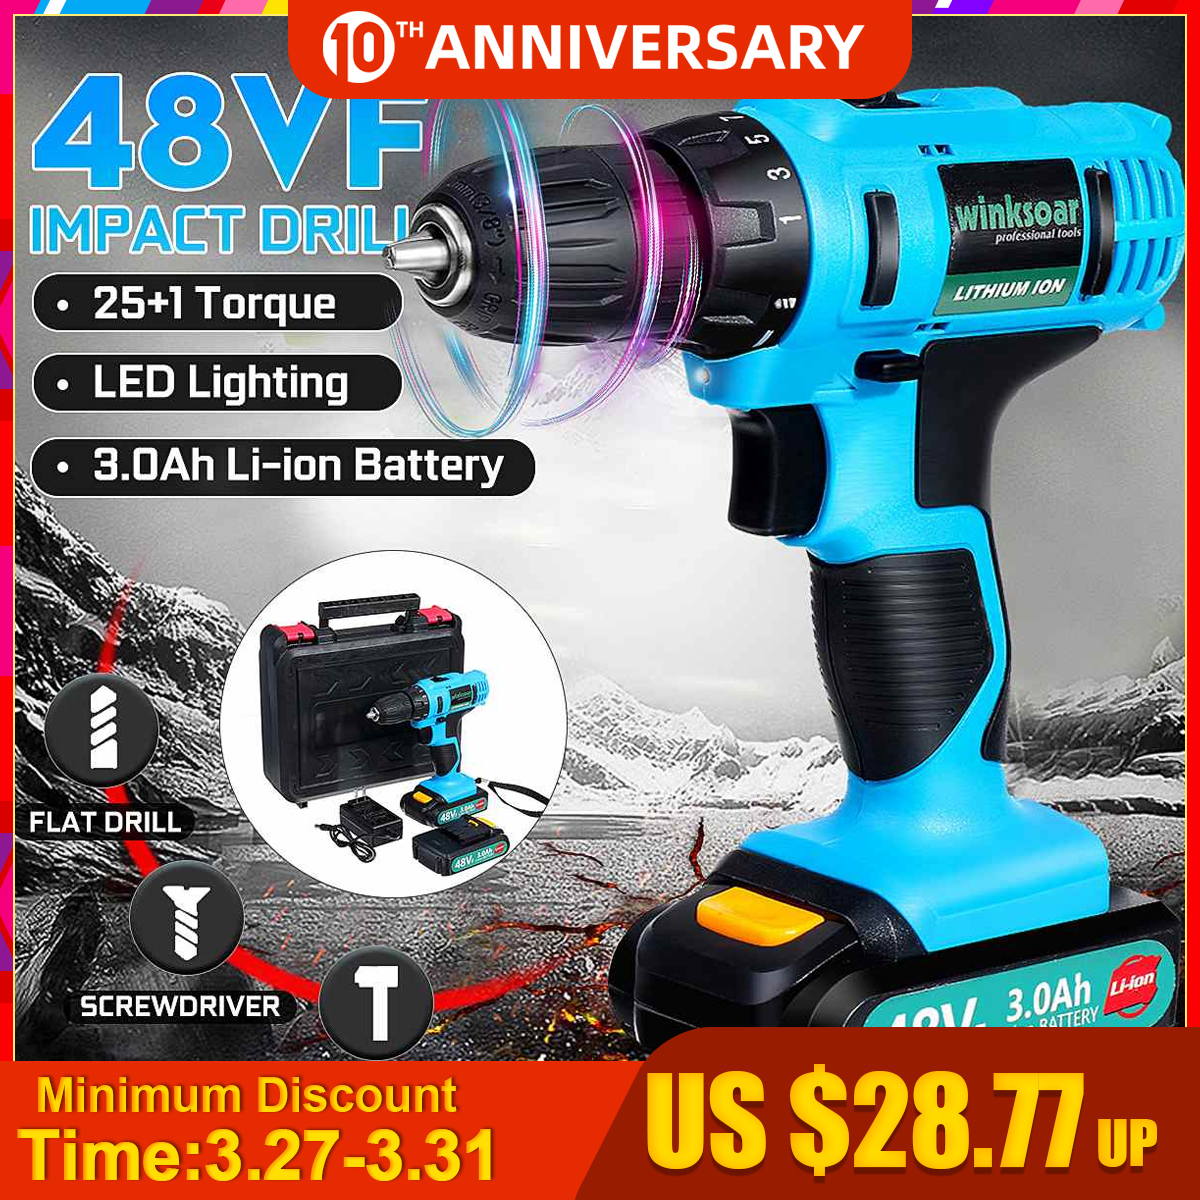 48VF 21V Electric Drill Househeld Cordless Screwdriver 3.0Ah Lithium Battery Rechargeable Impact Drill Power Tool 2 Speed